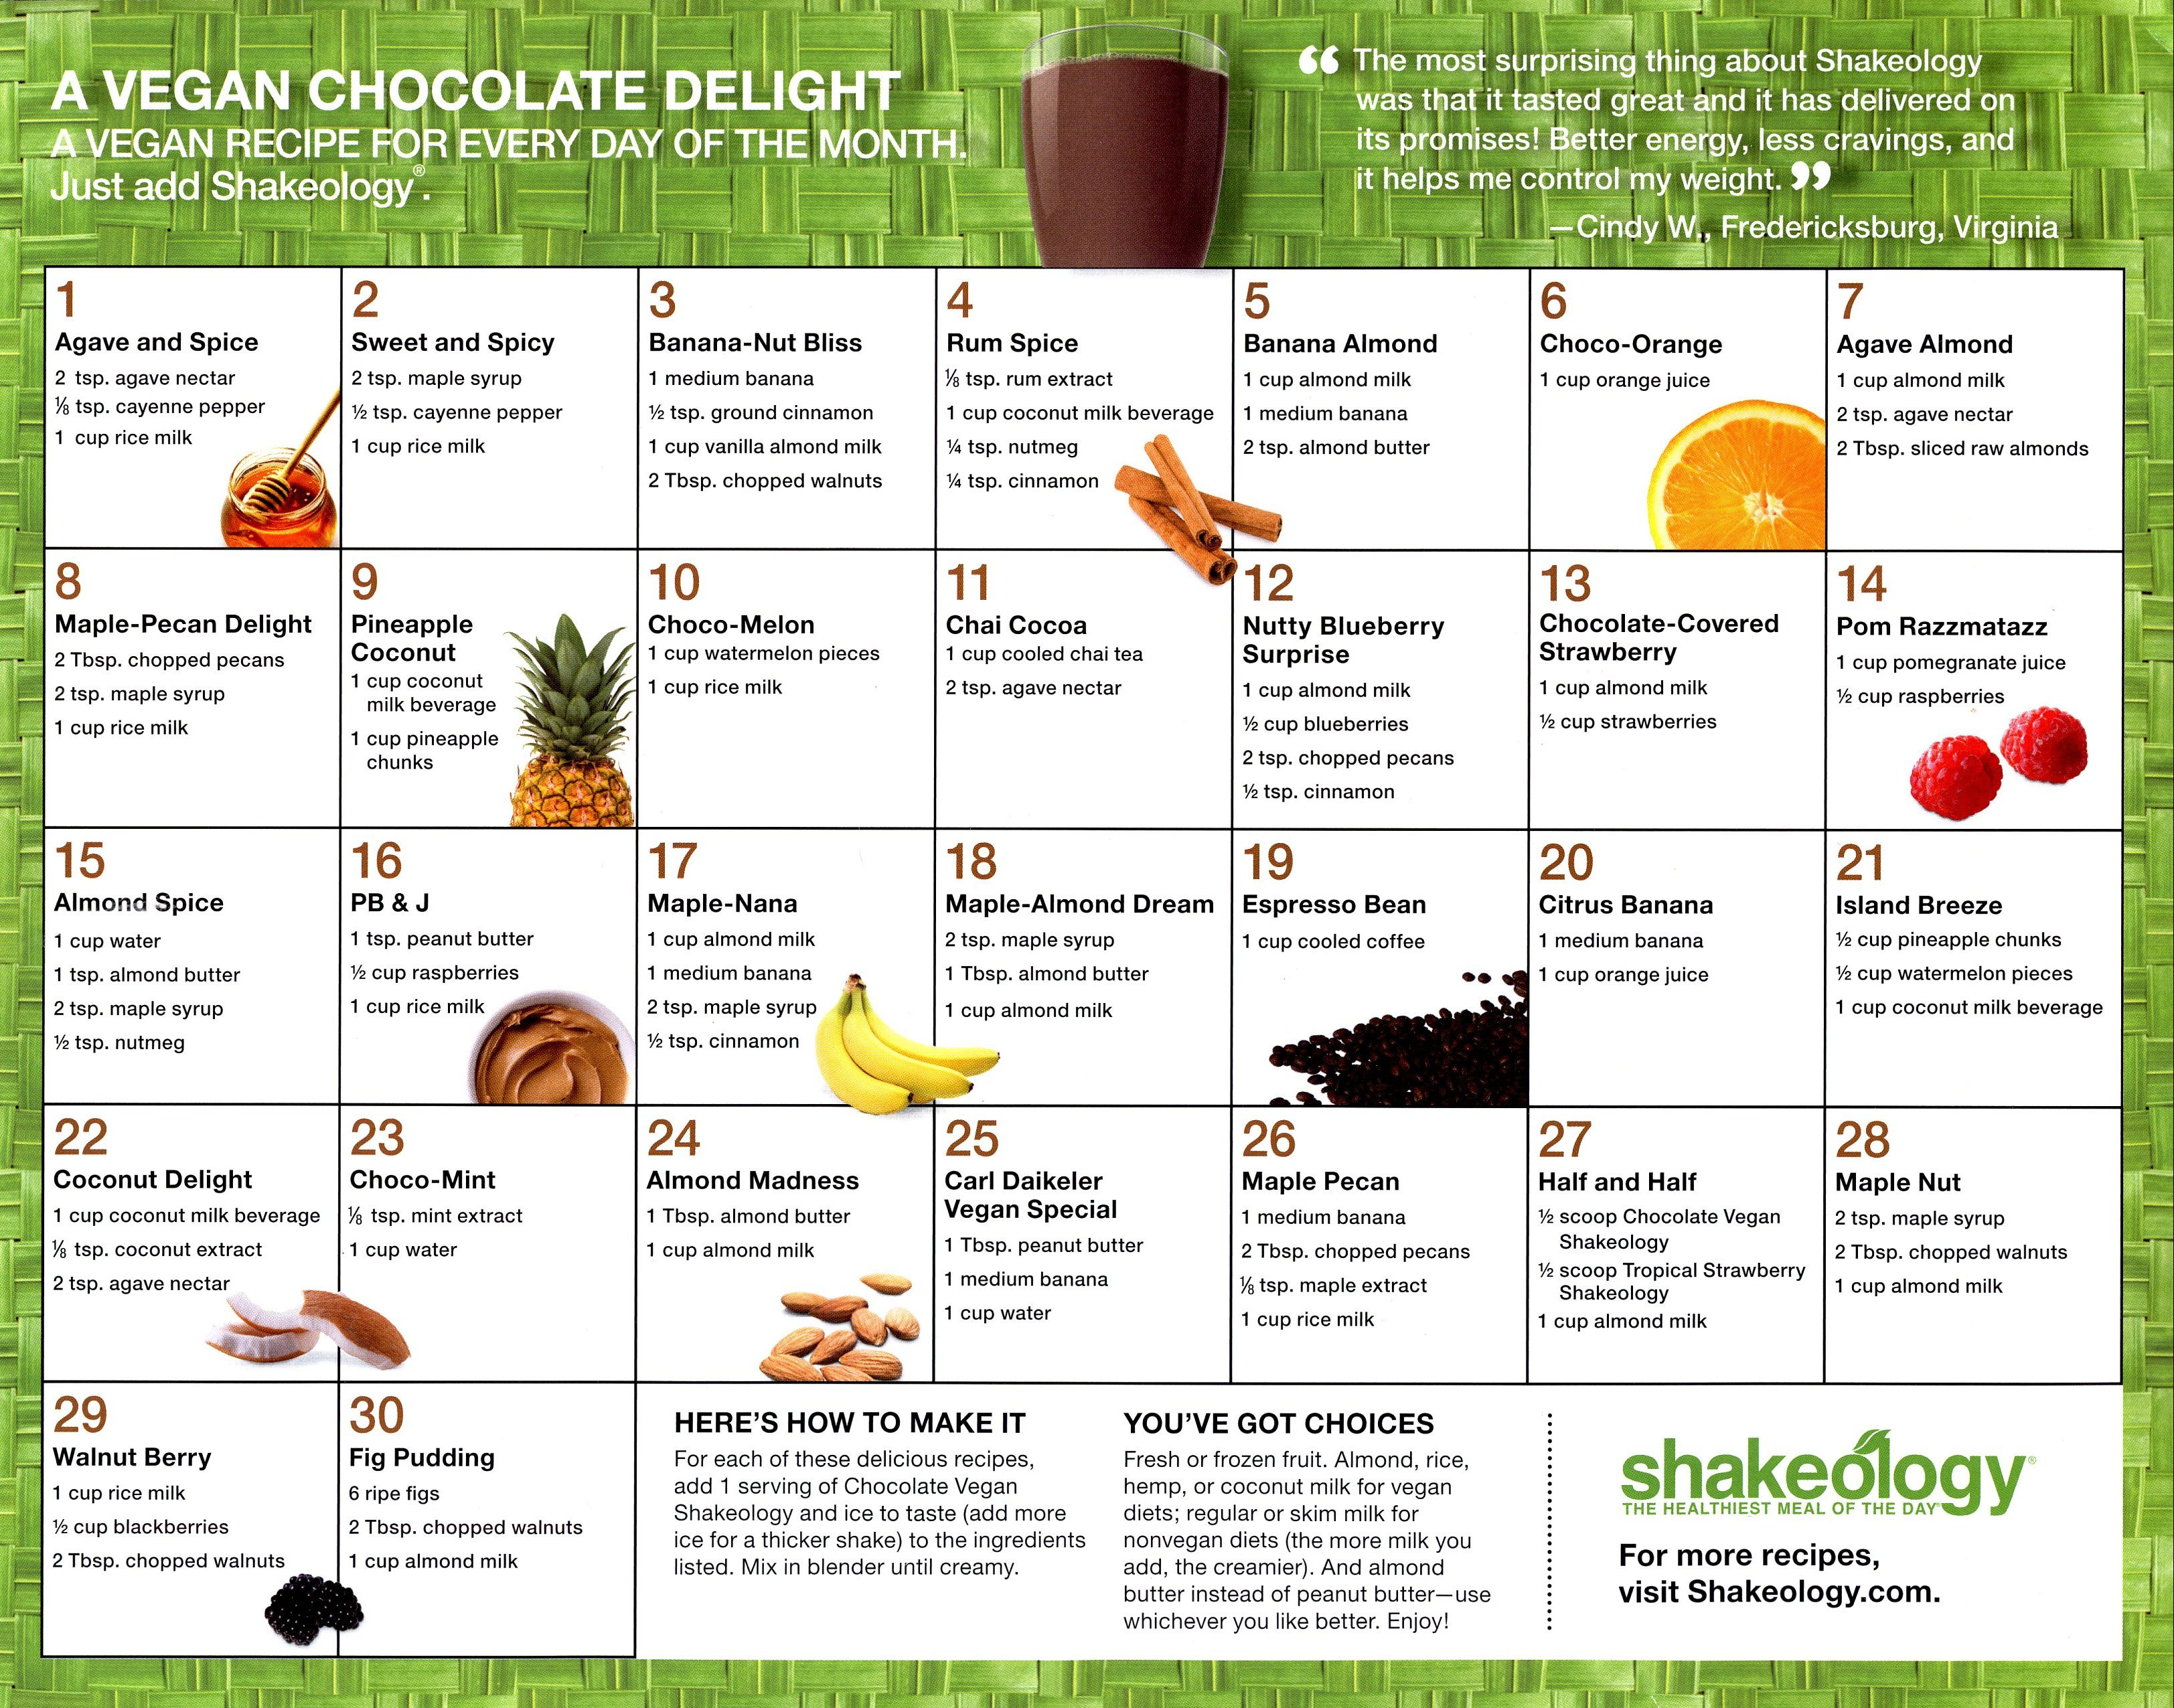 Chocolate Vegan Shakeology Recipes  Vegan Chocolate Shakeology